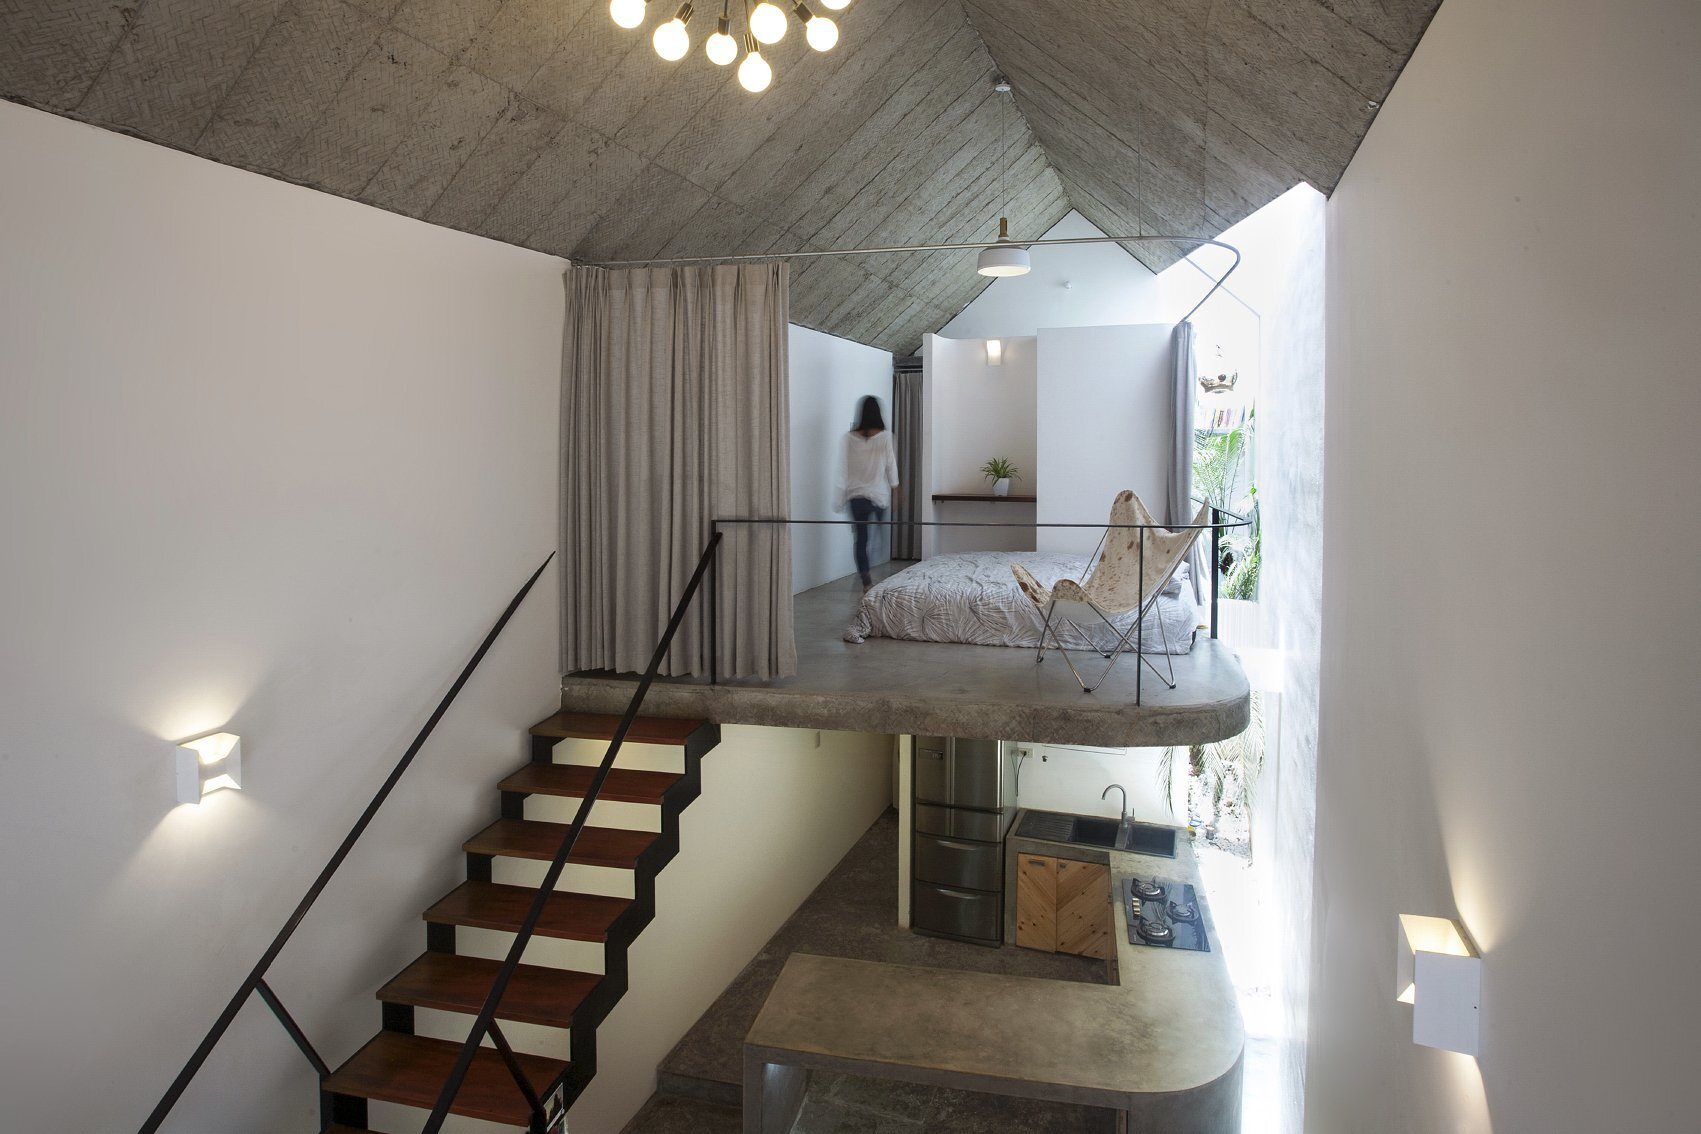 Maison T - Nghia-Architect - Vietnam - Bedroom - Humble Homes